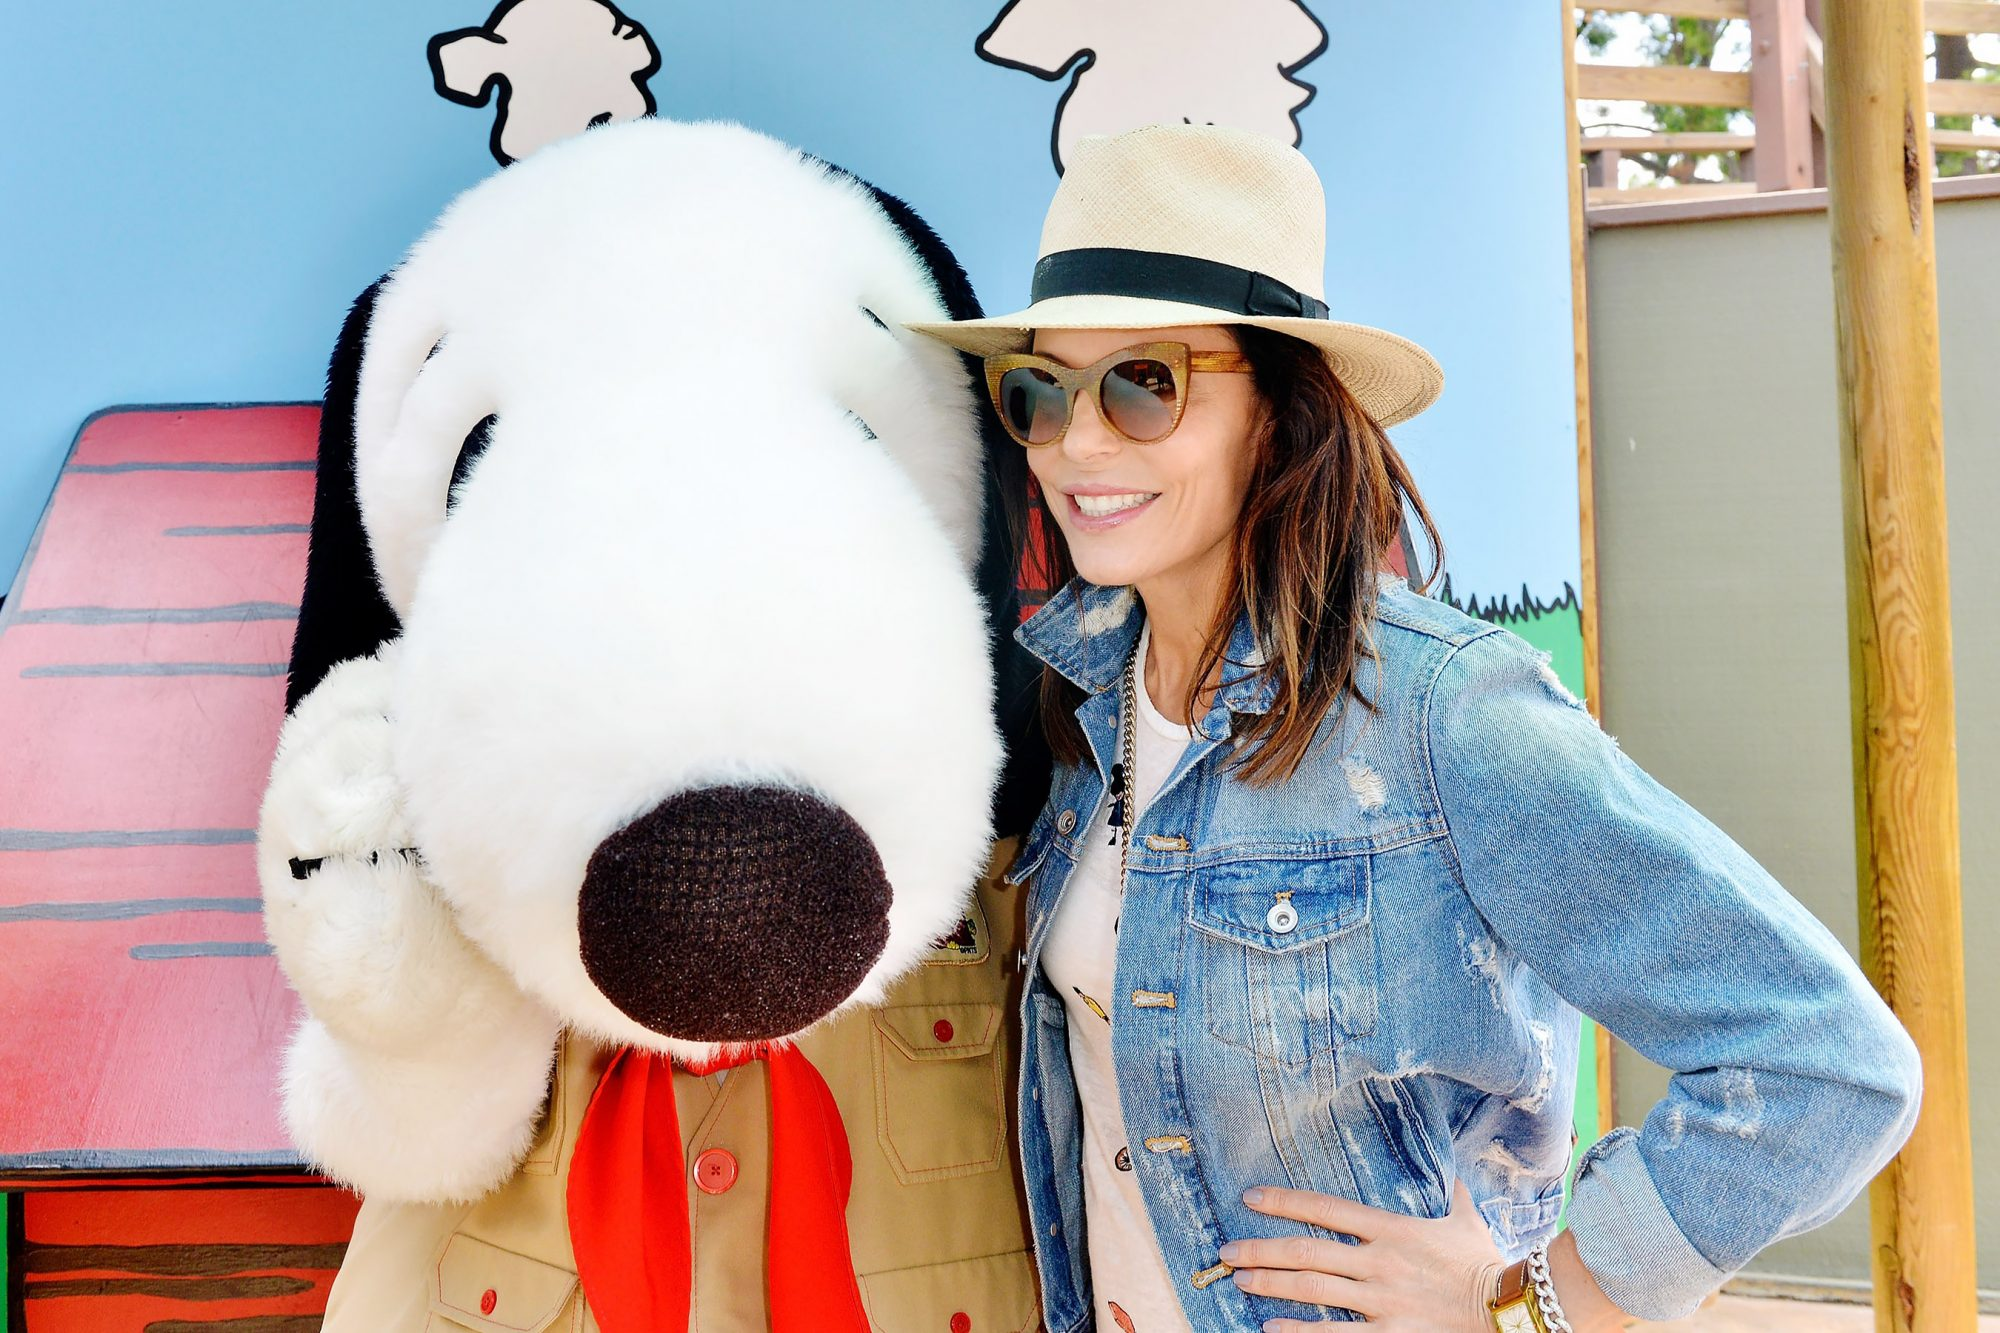 Bethenny Frankel Visits Knott's Berry Farm